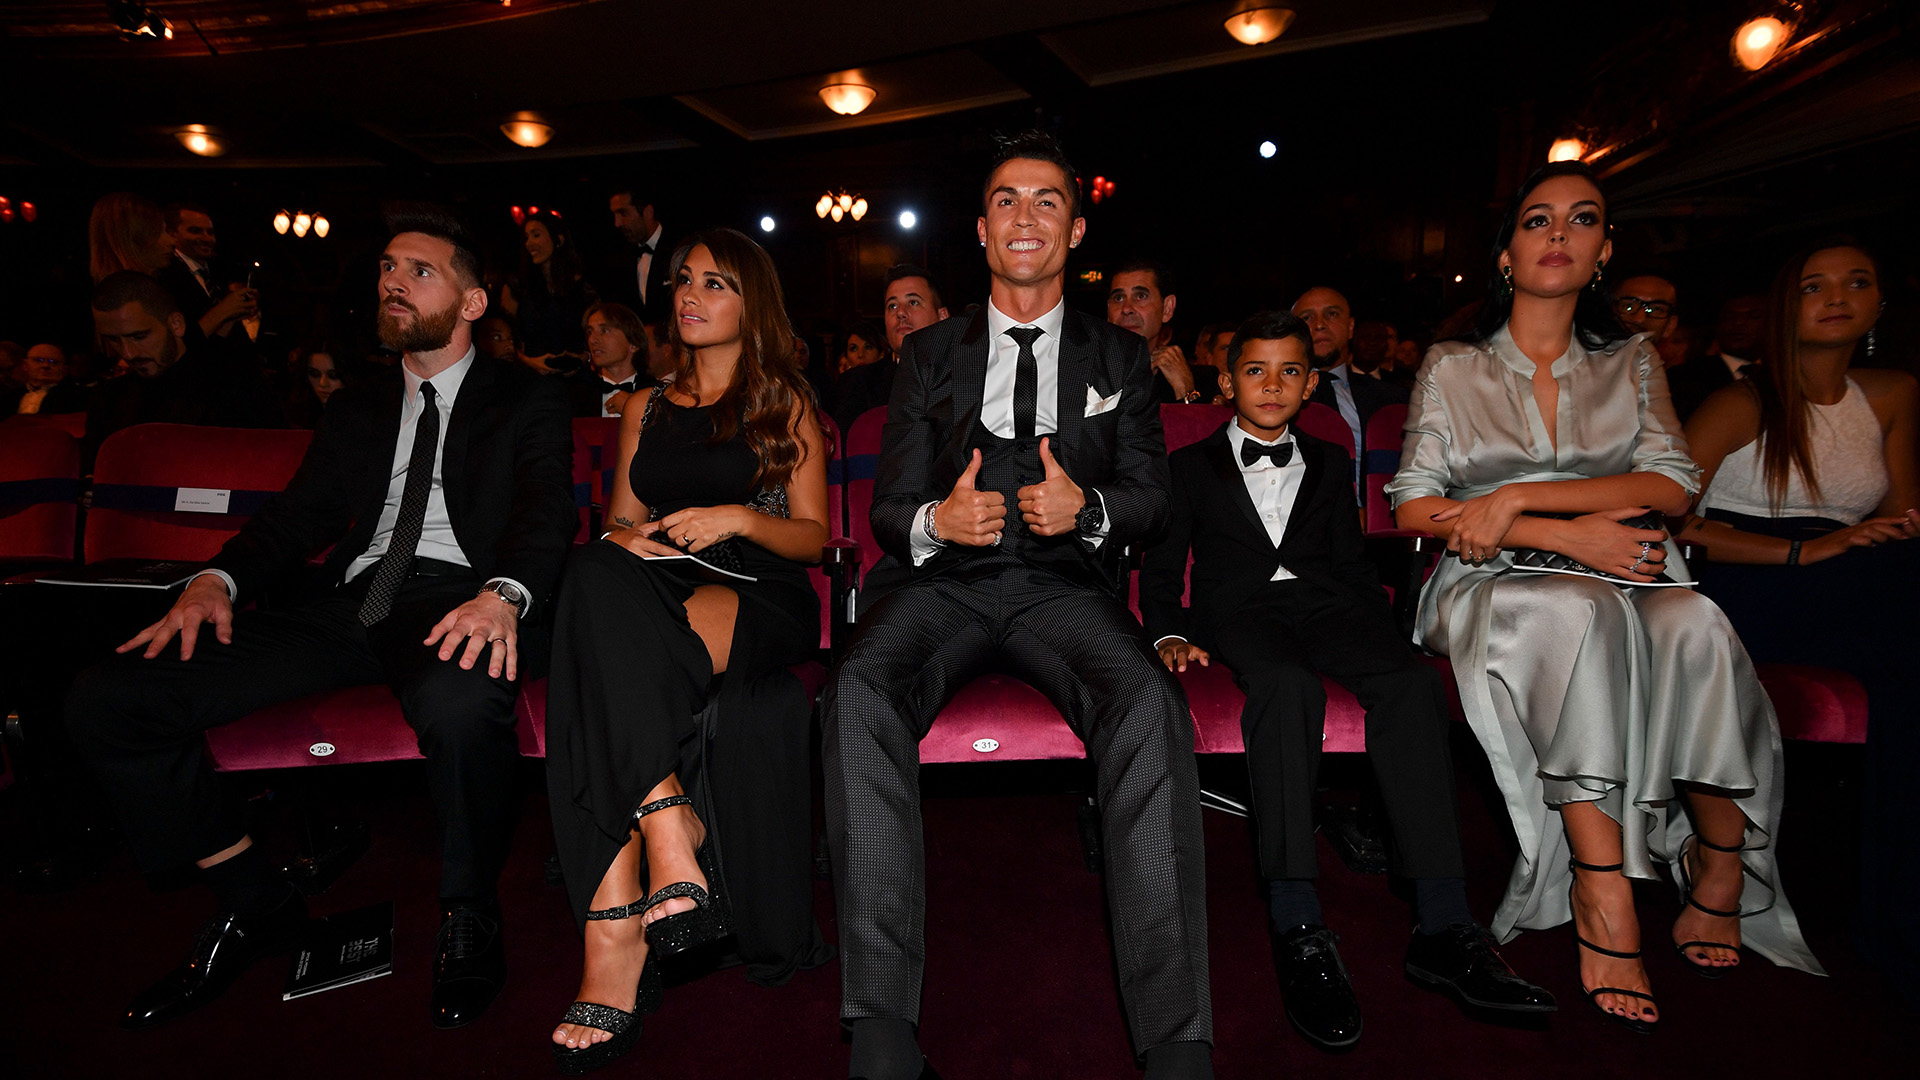 Cristiano Ronaldo, Lionel Messi and Co.